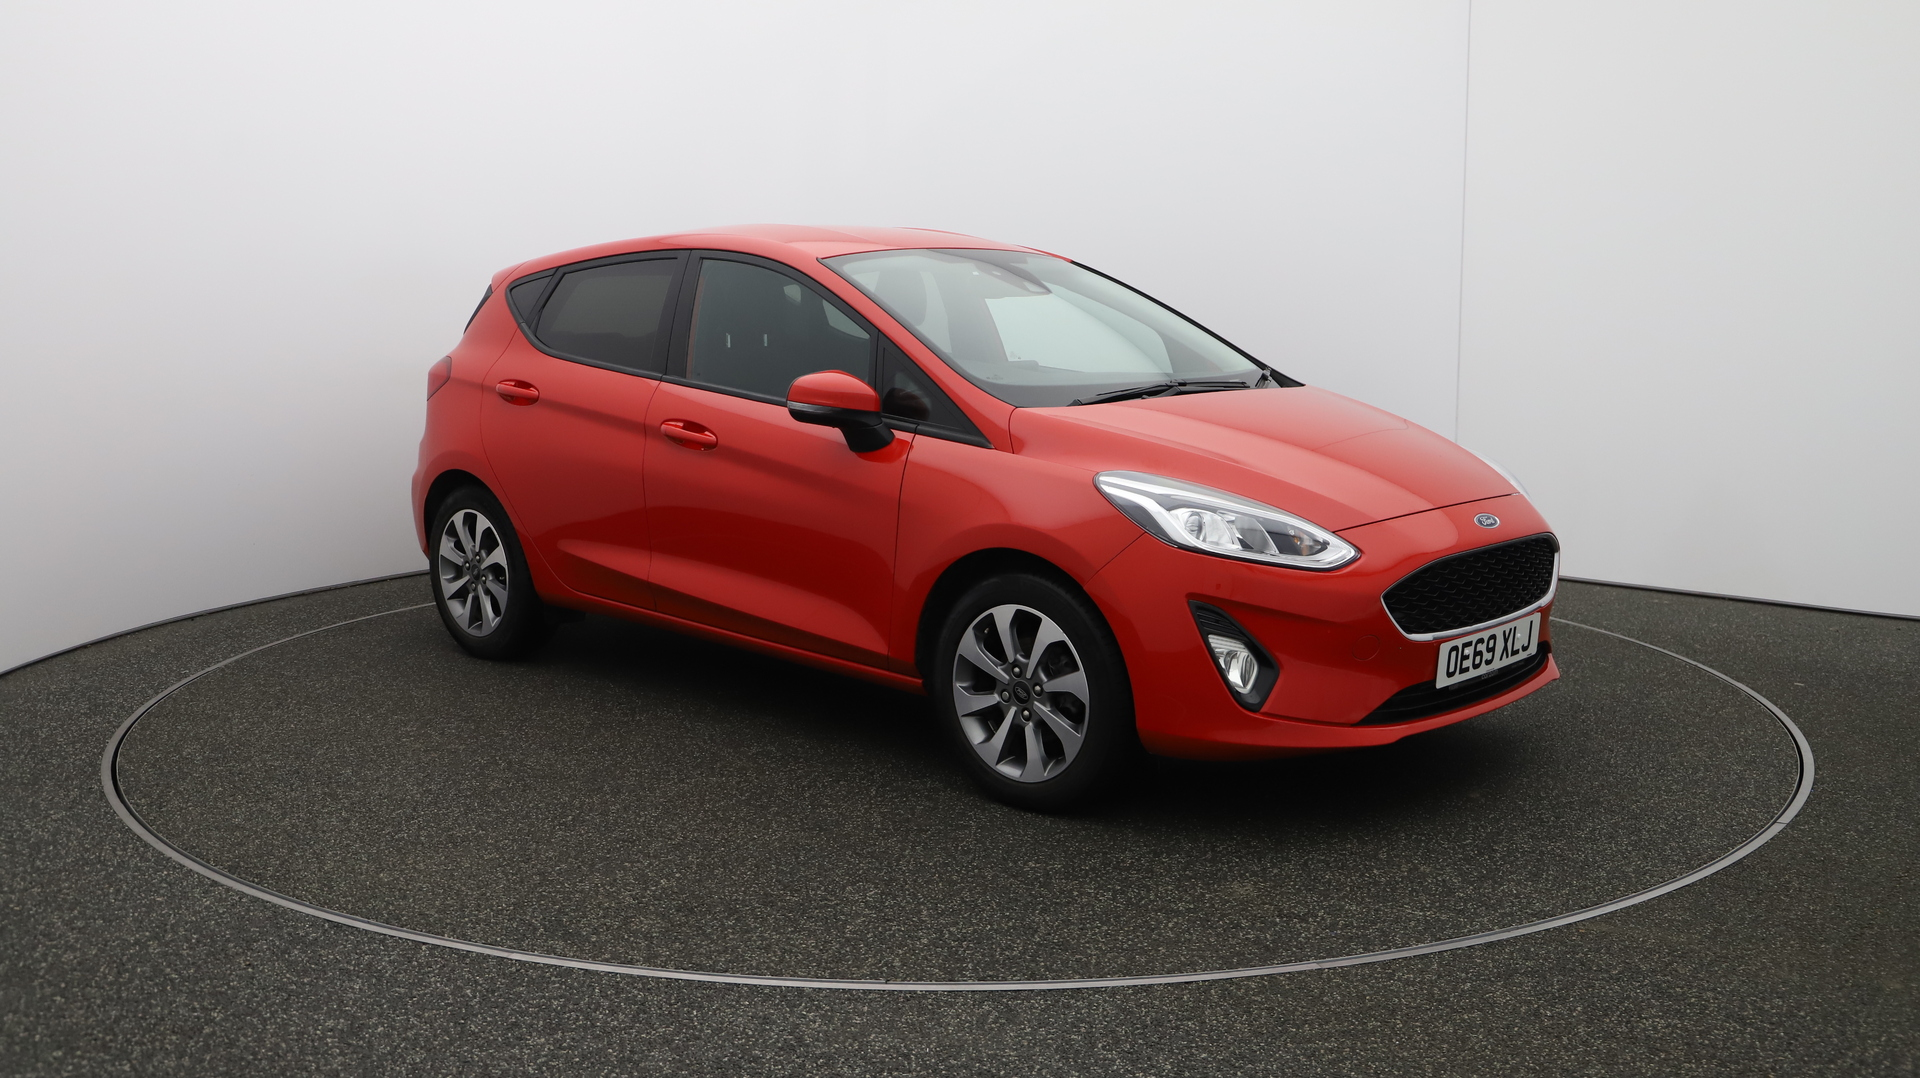 Ford Fiesta TREND Service History